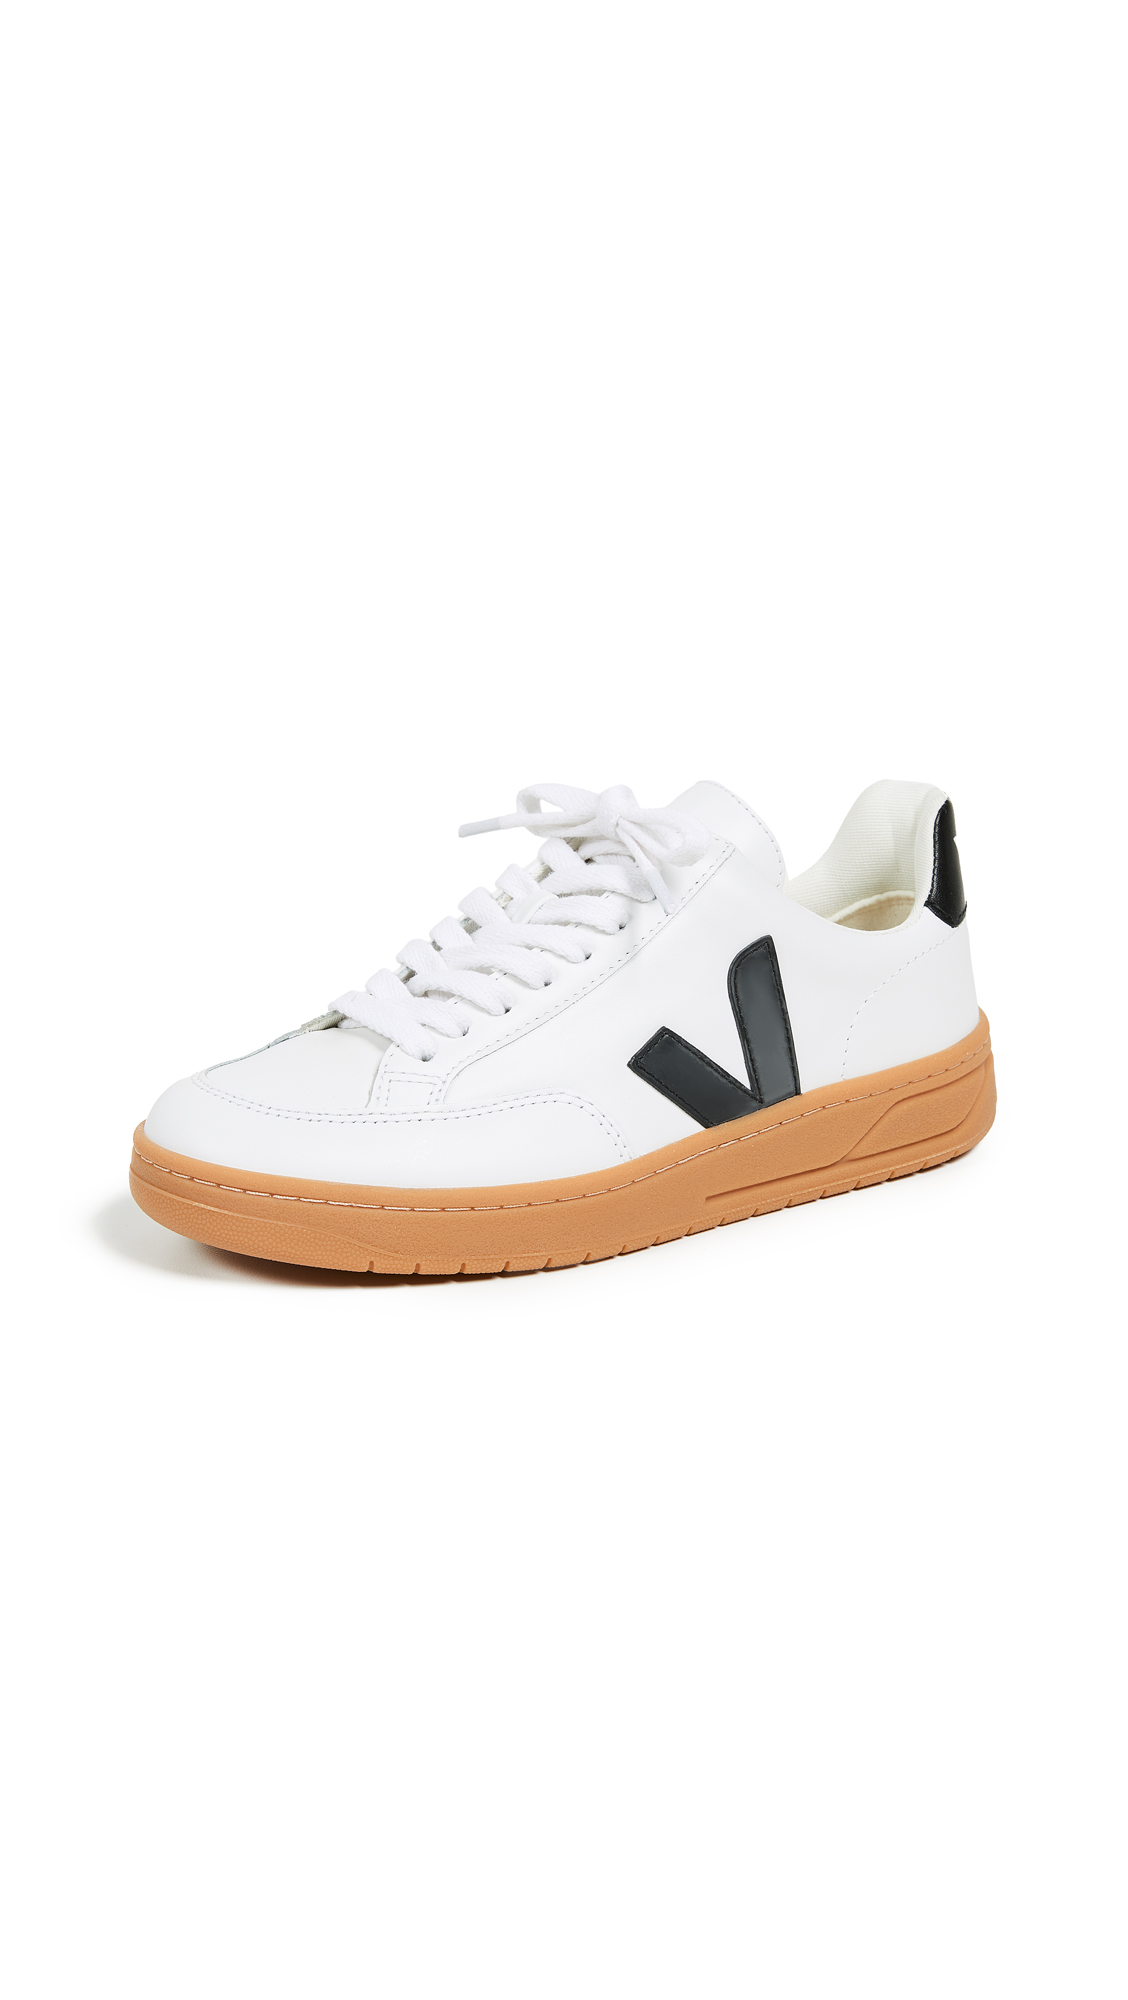 Veja V-12 Sneakers - Extra White/Black/Natural Sole